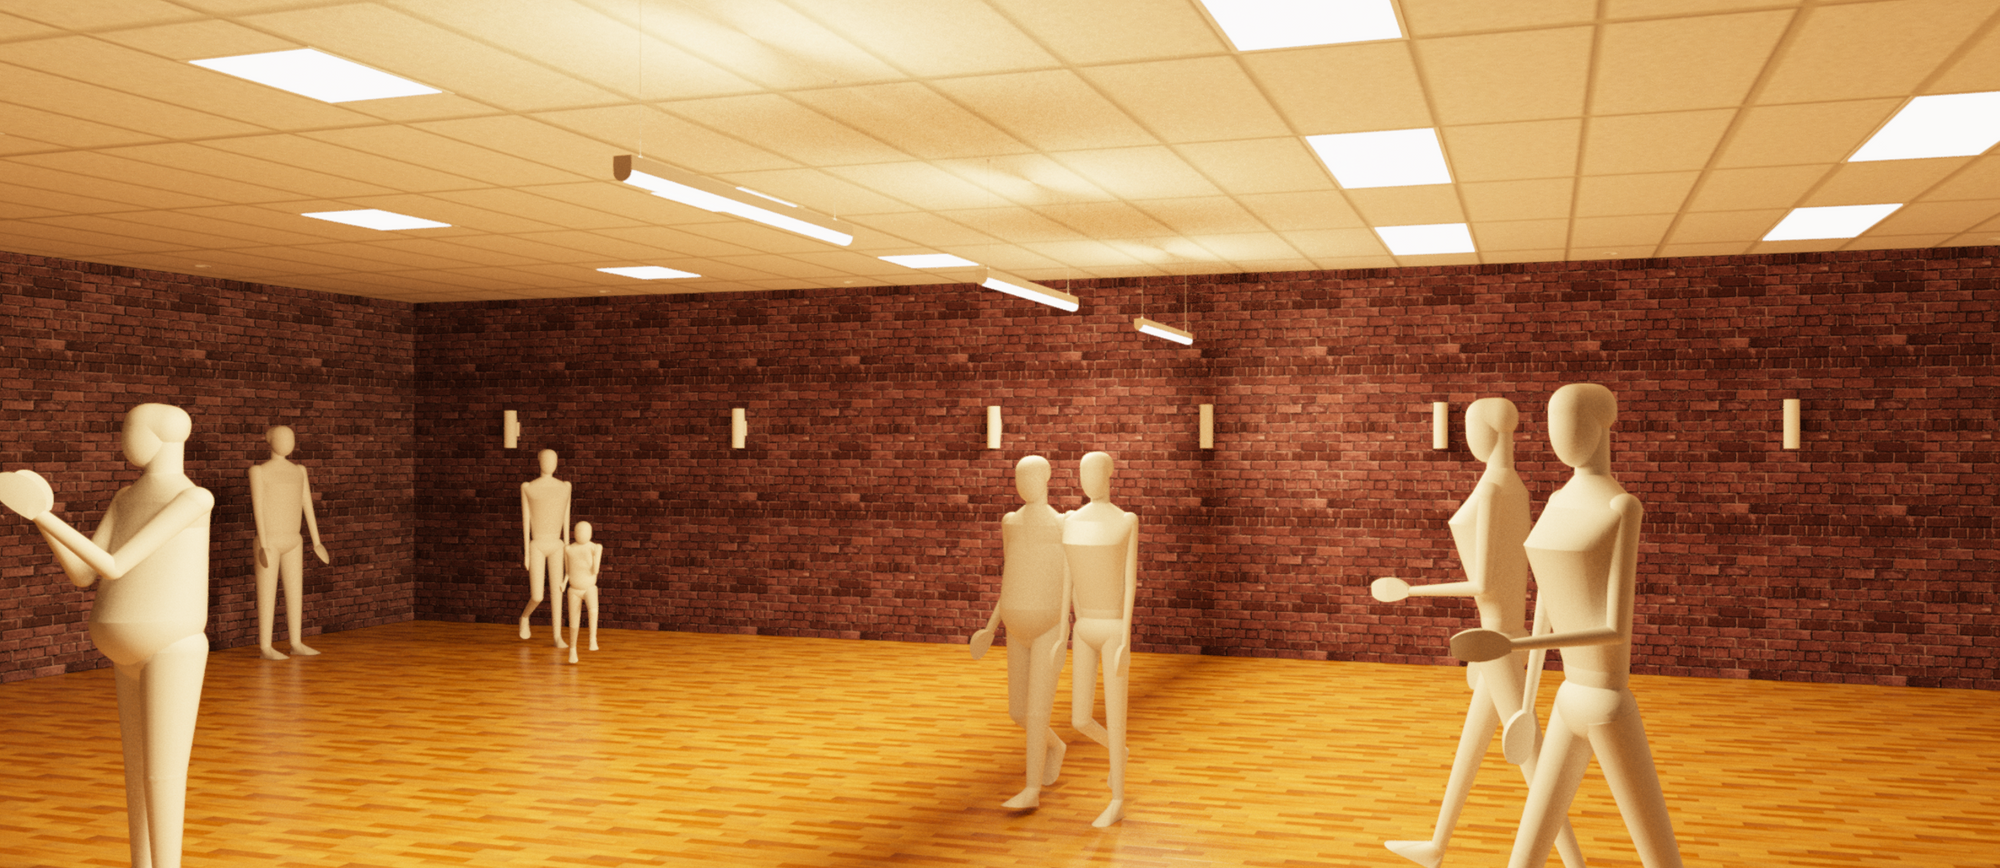 image showing rendered interior scene from Revit.